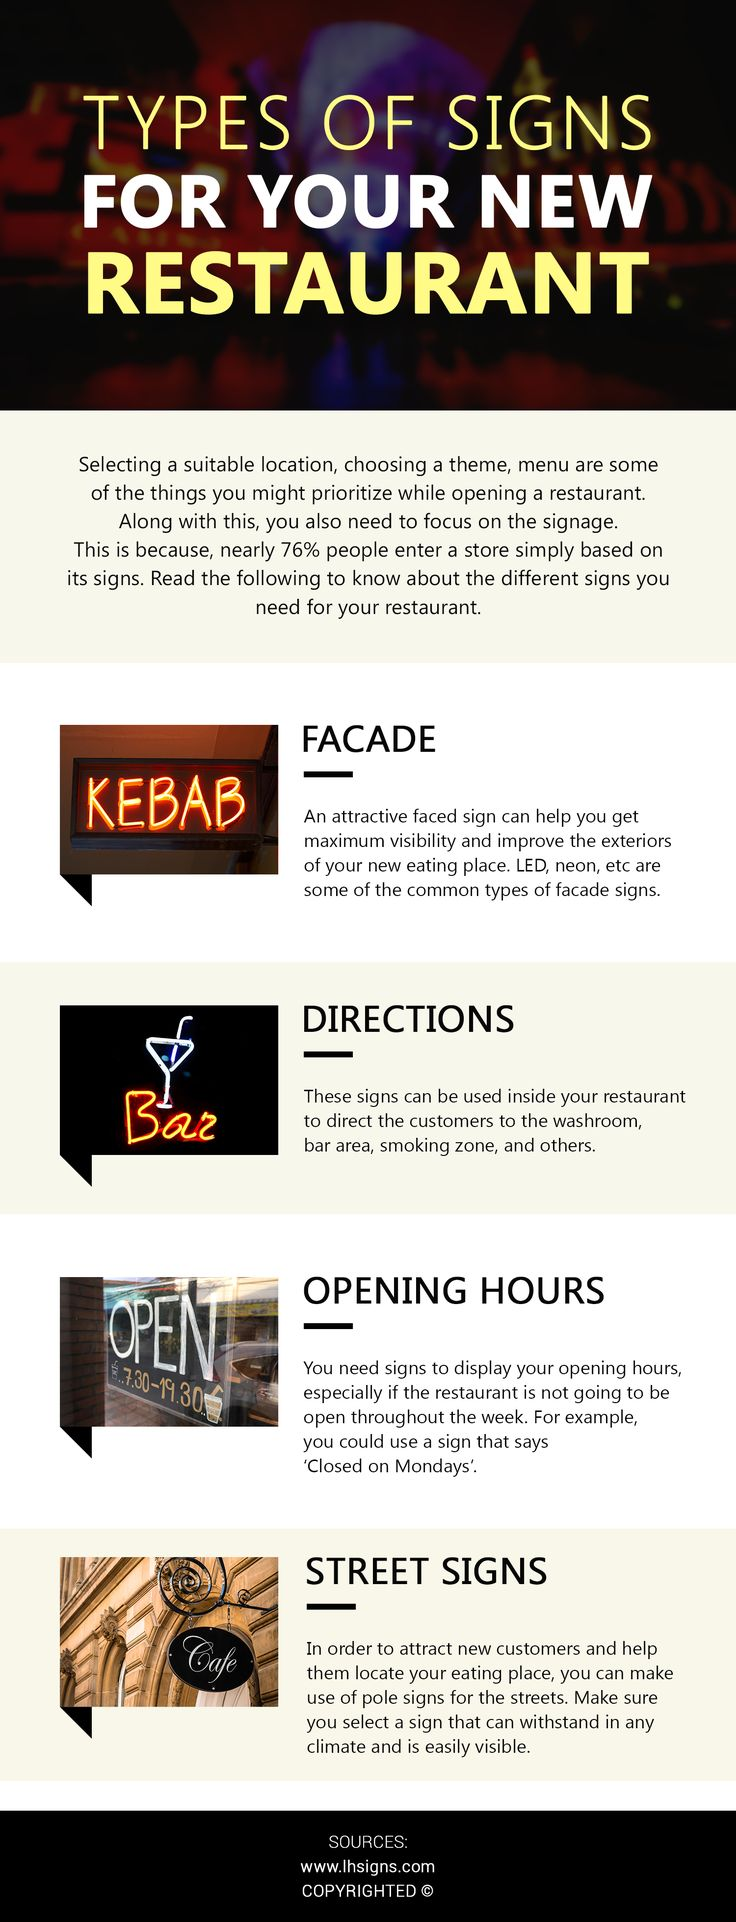 You can choose various sign types for your restaurant such as facade signs, location signs, directional signs, street signs, etc. from reputed manufacturers.